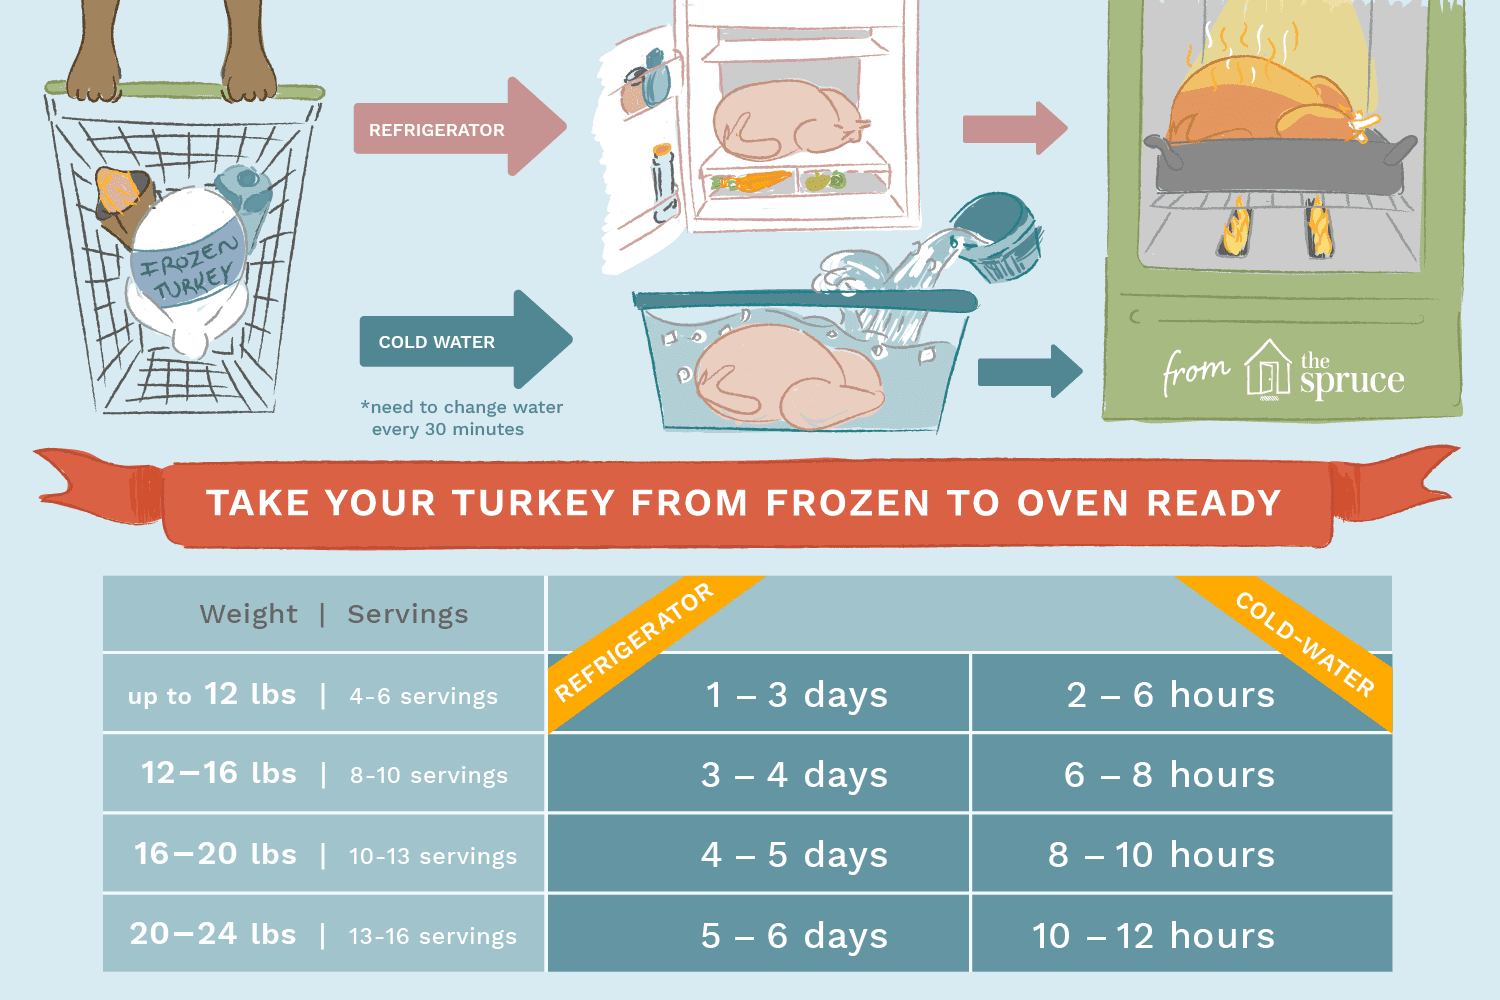 How long can a thawed turkey keep in the fridge - answers.com